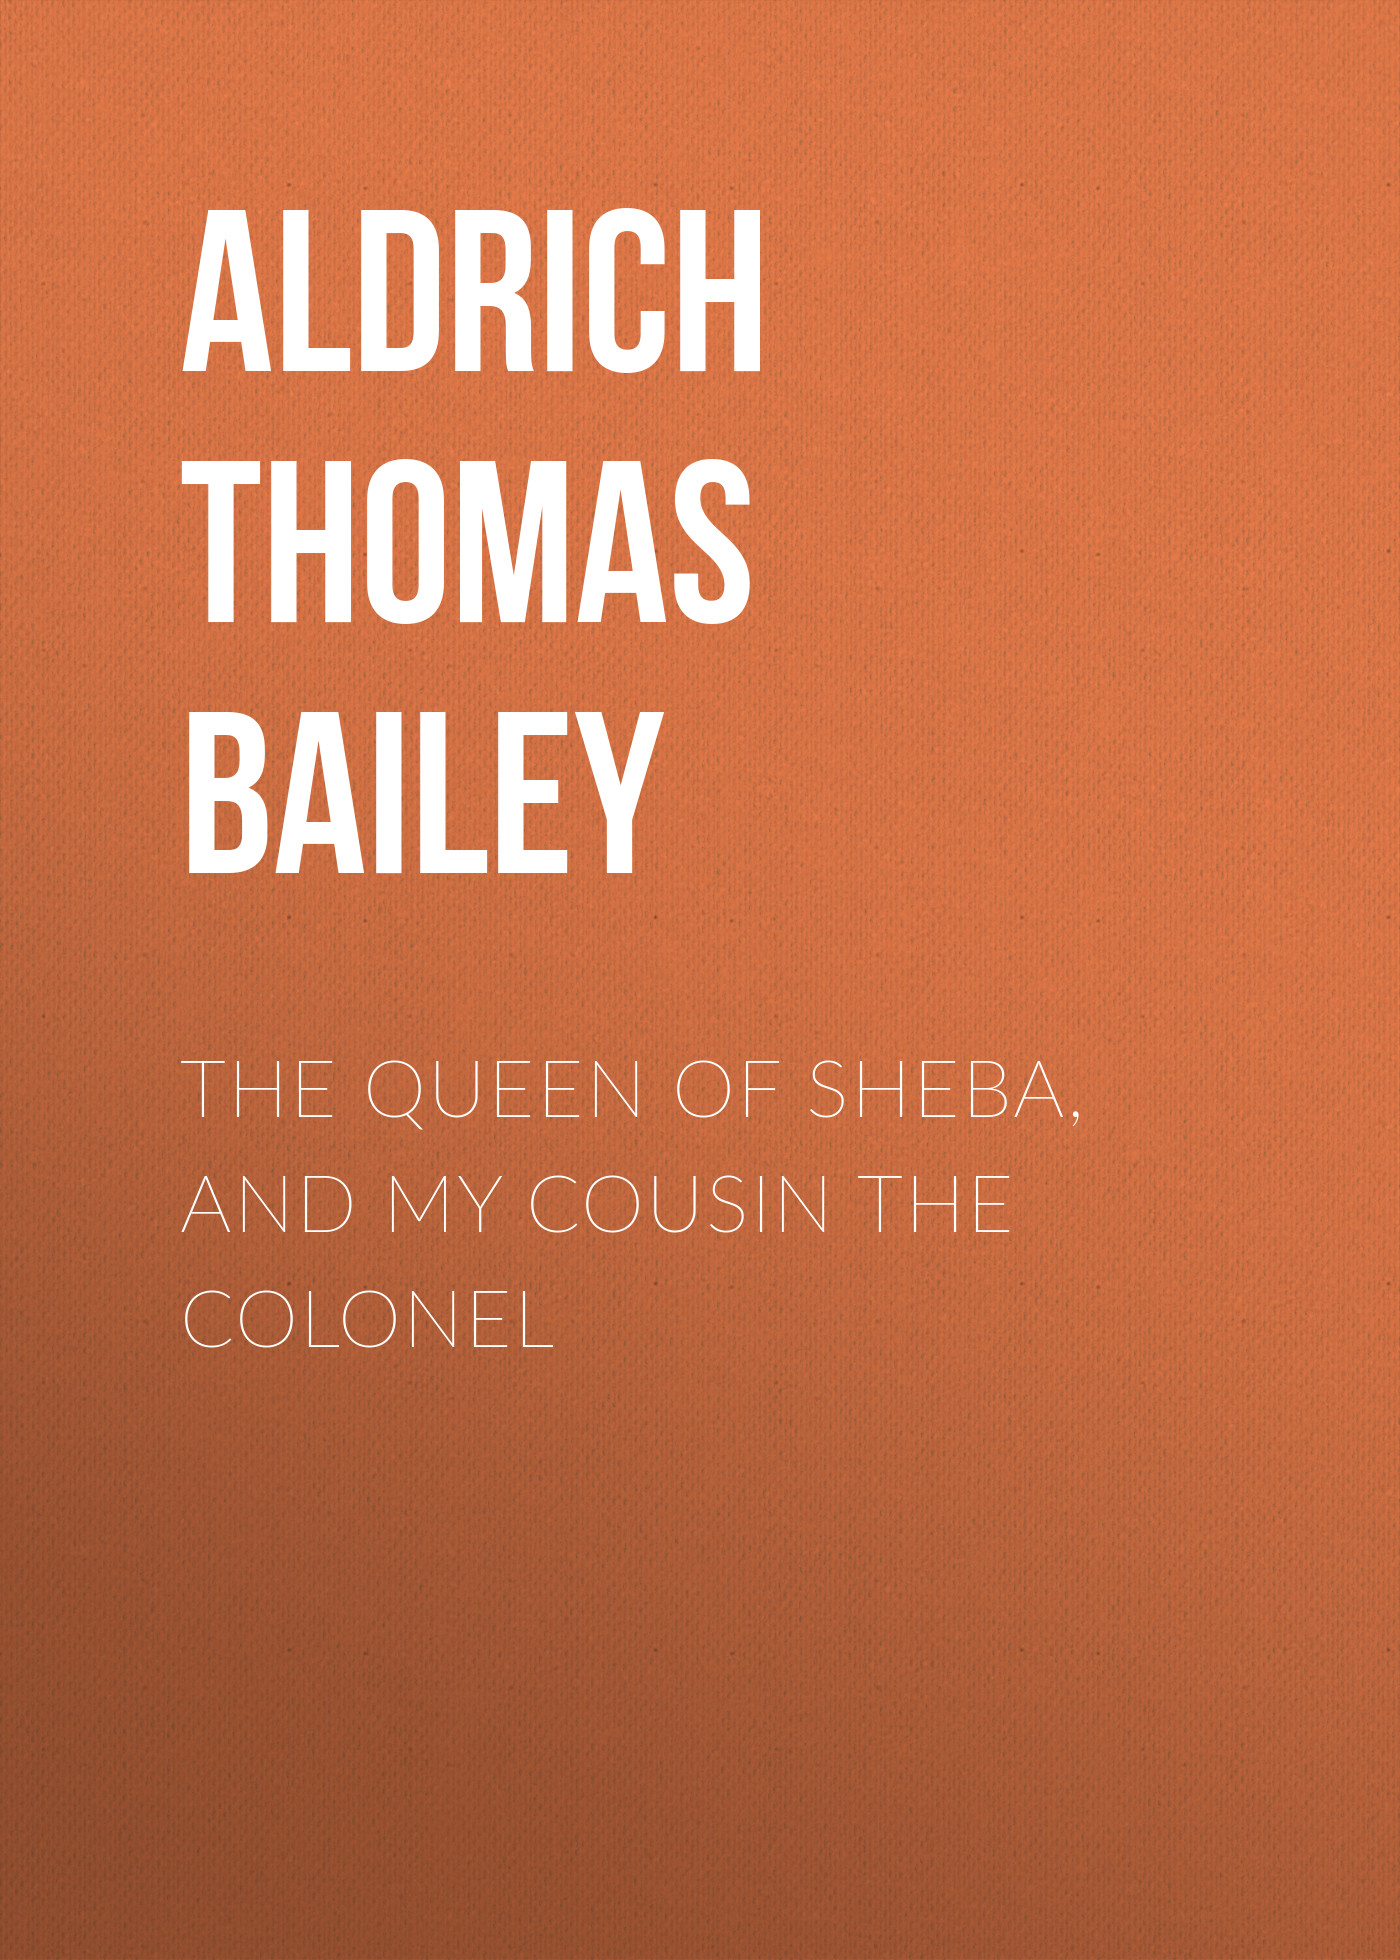 Aldrich Thomas Bailey The Queen of Sheba, and My Cousin the Colonel